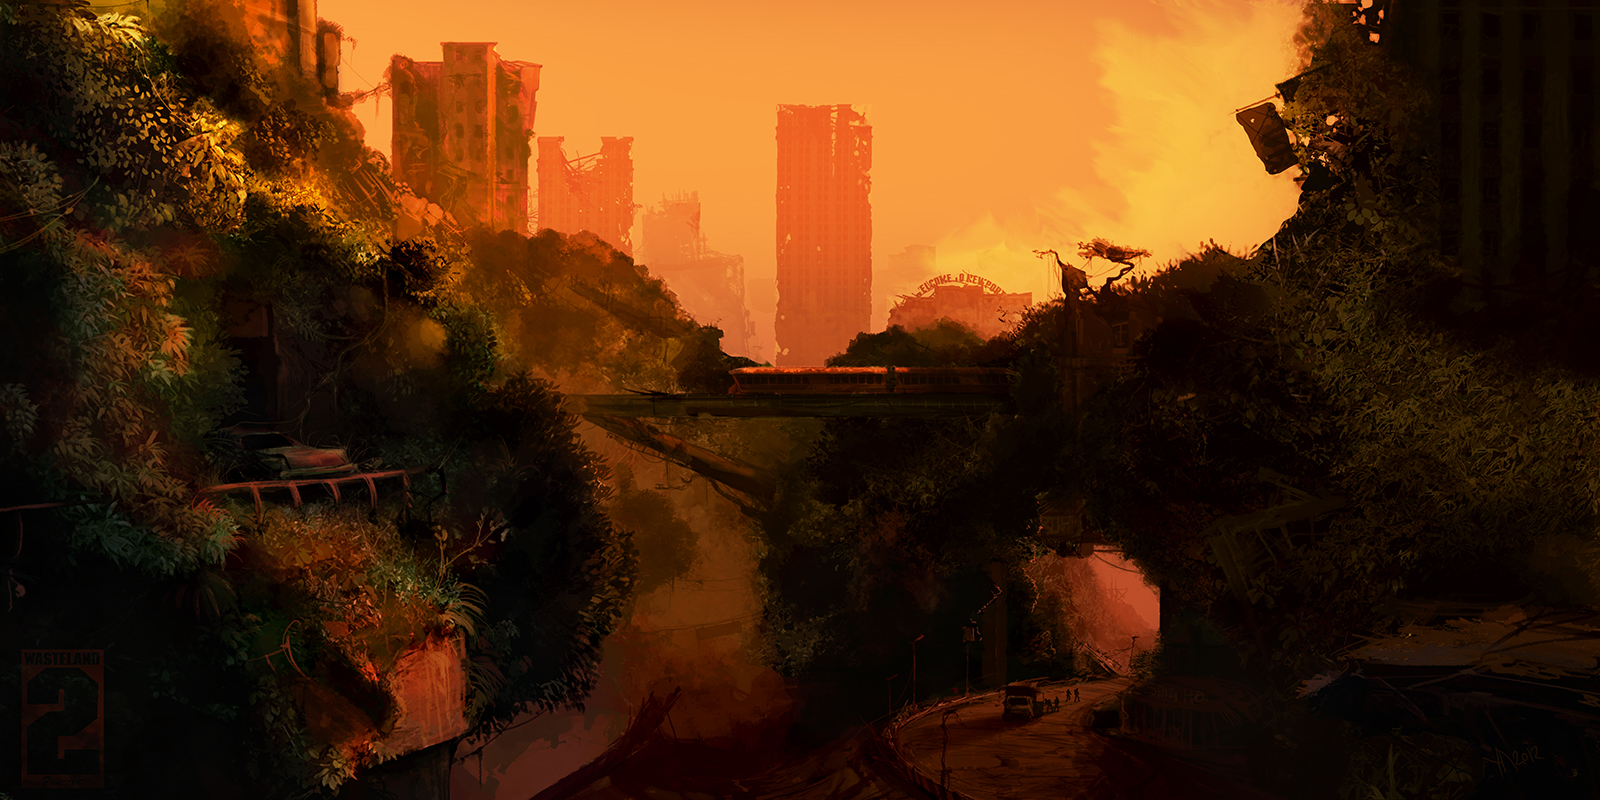 jungle_of_newport___wasteland_2_fan_art_by_weilard-d4wzxqn.jpg